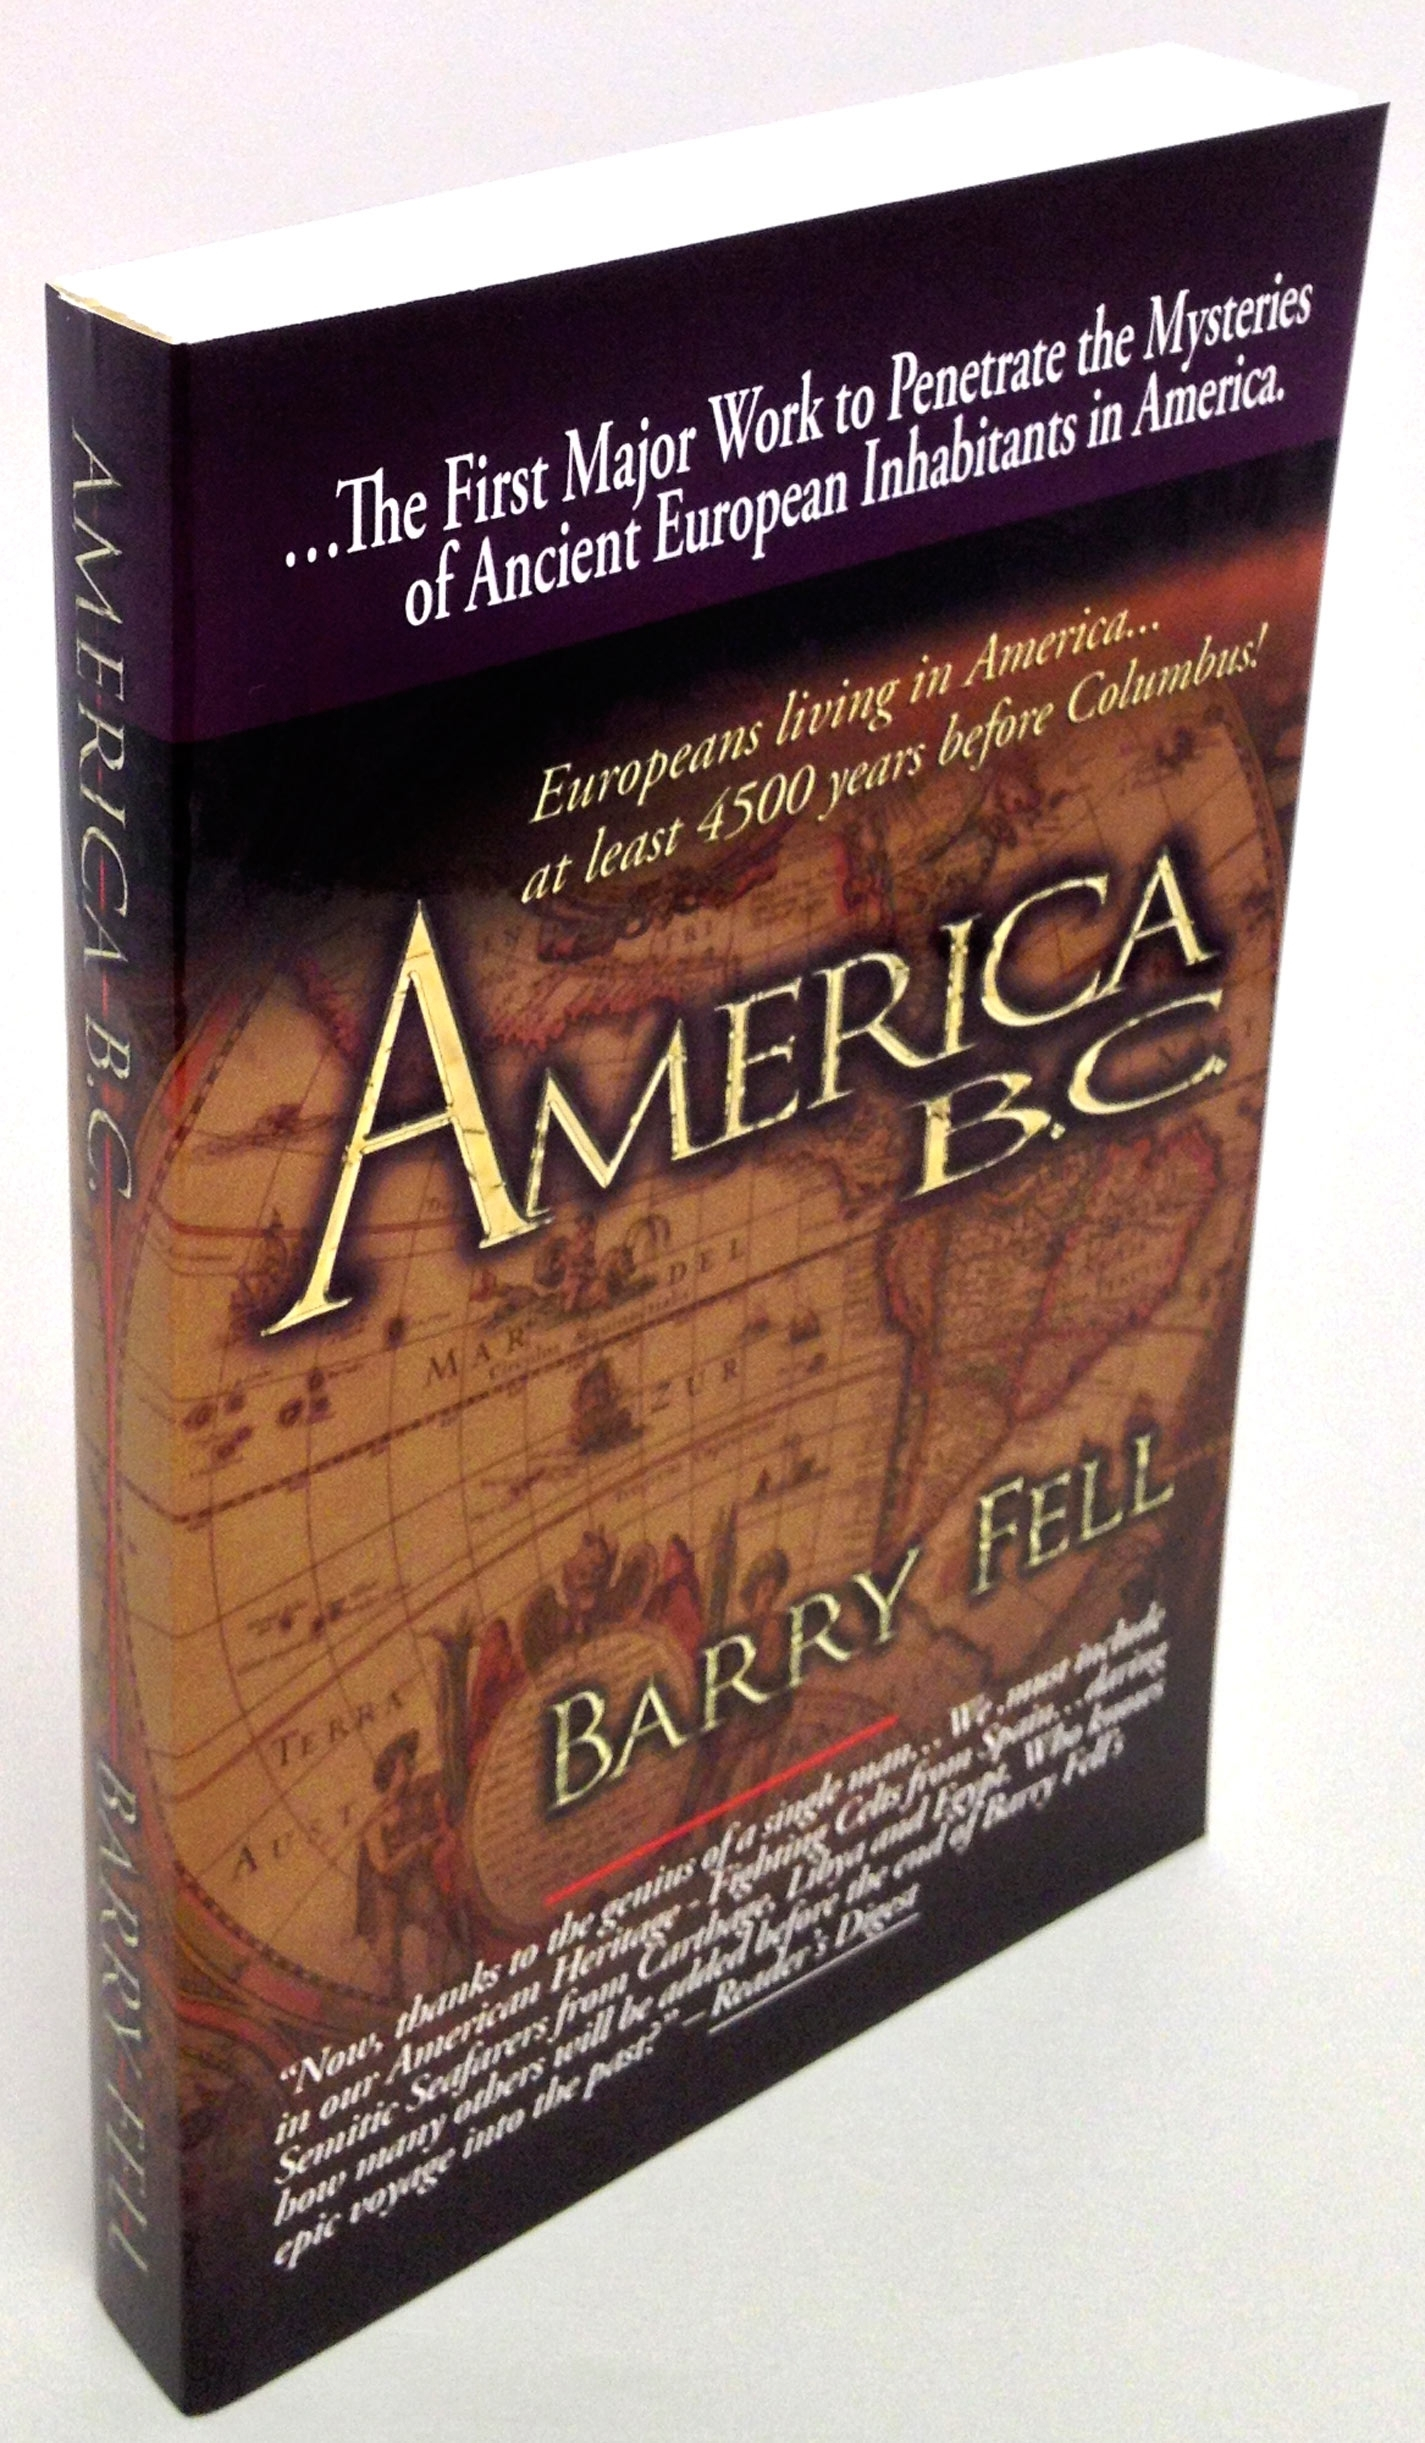 America B.C. by Barry Fell... [Bargain Basement]....may have a scuff or wrinkle in spine or slight toner on a few pagesbr>same f